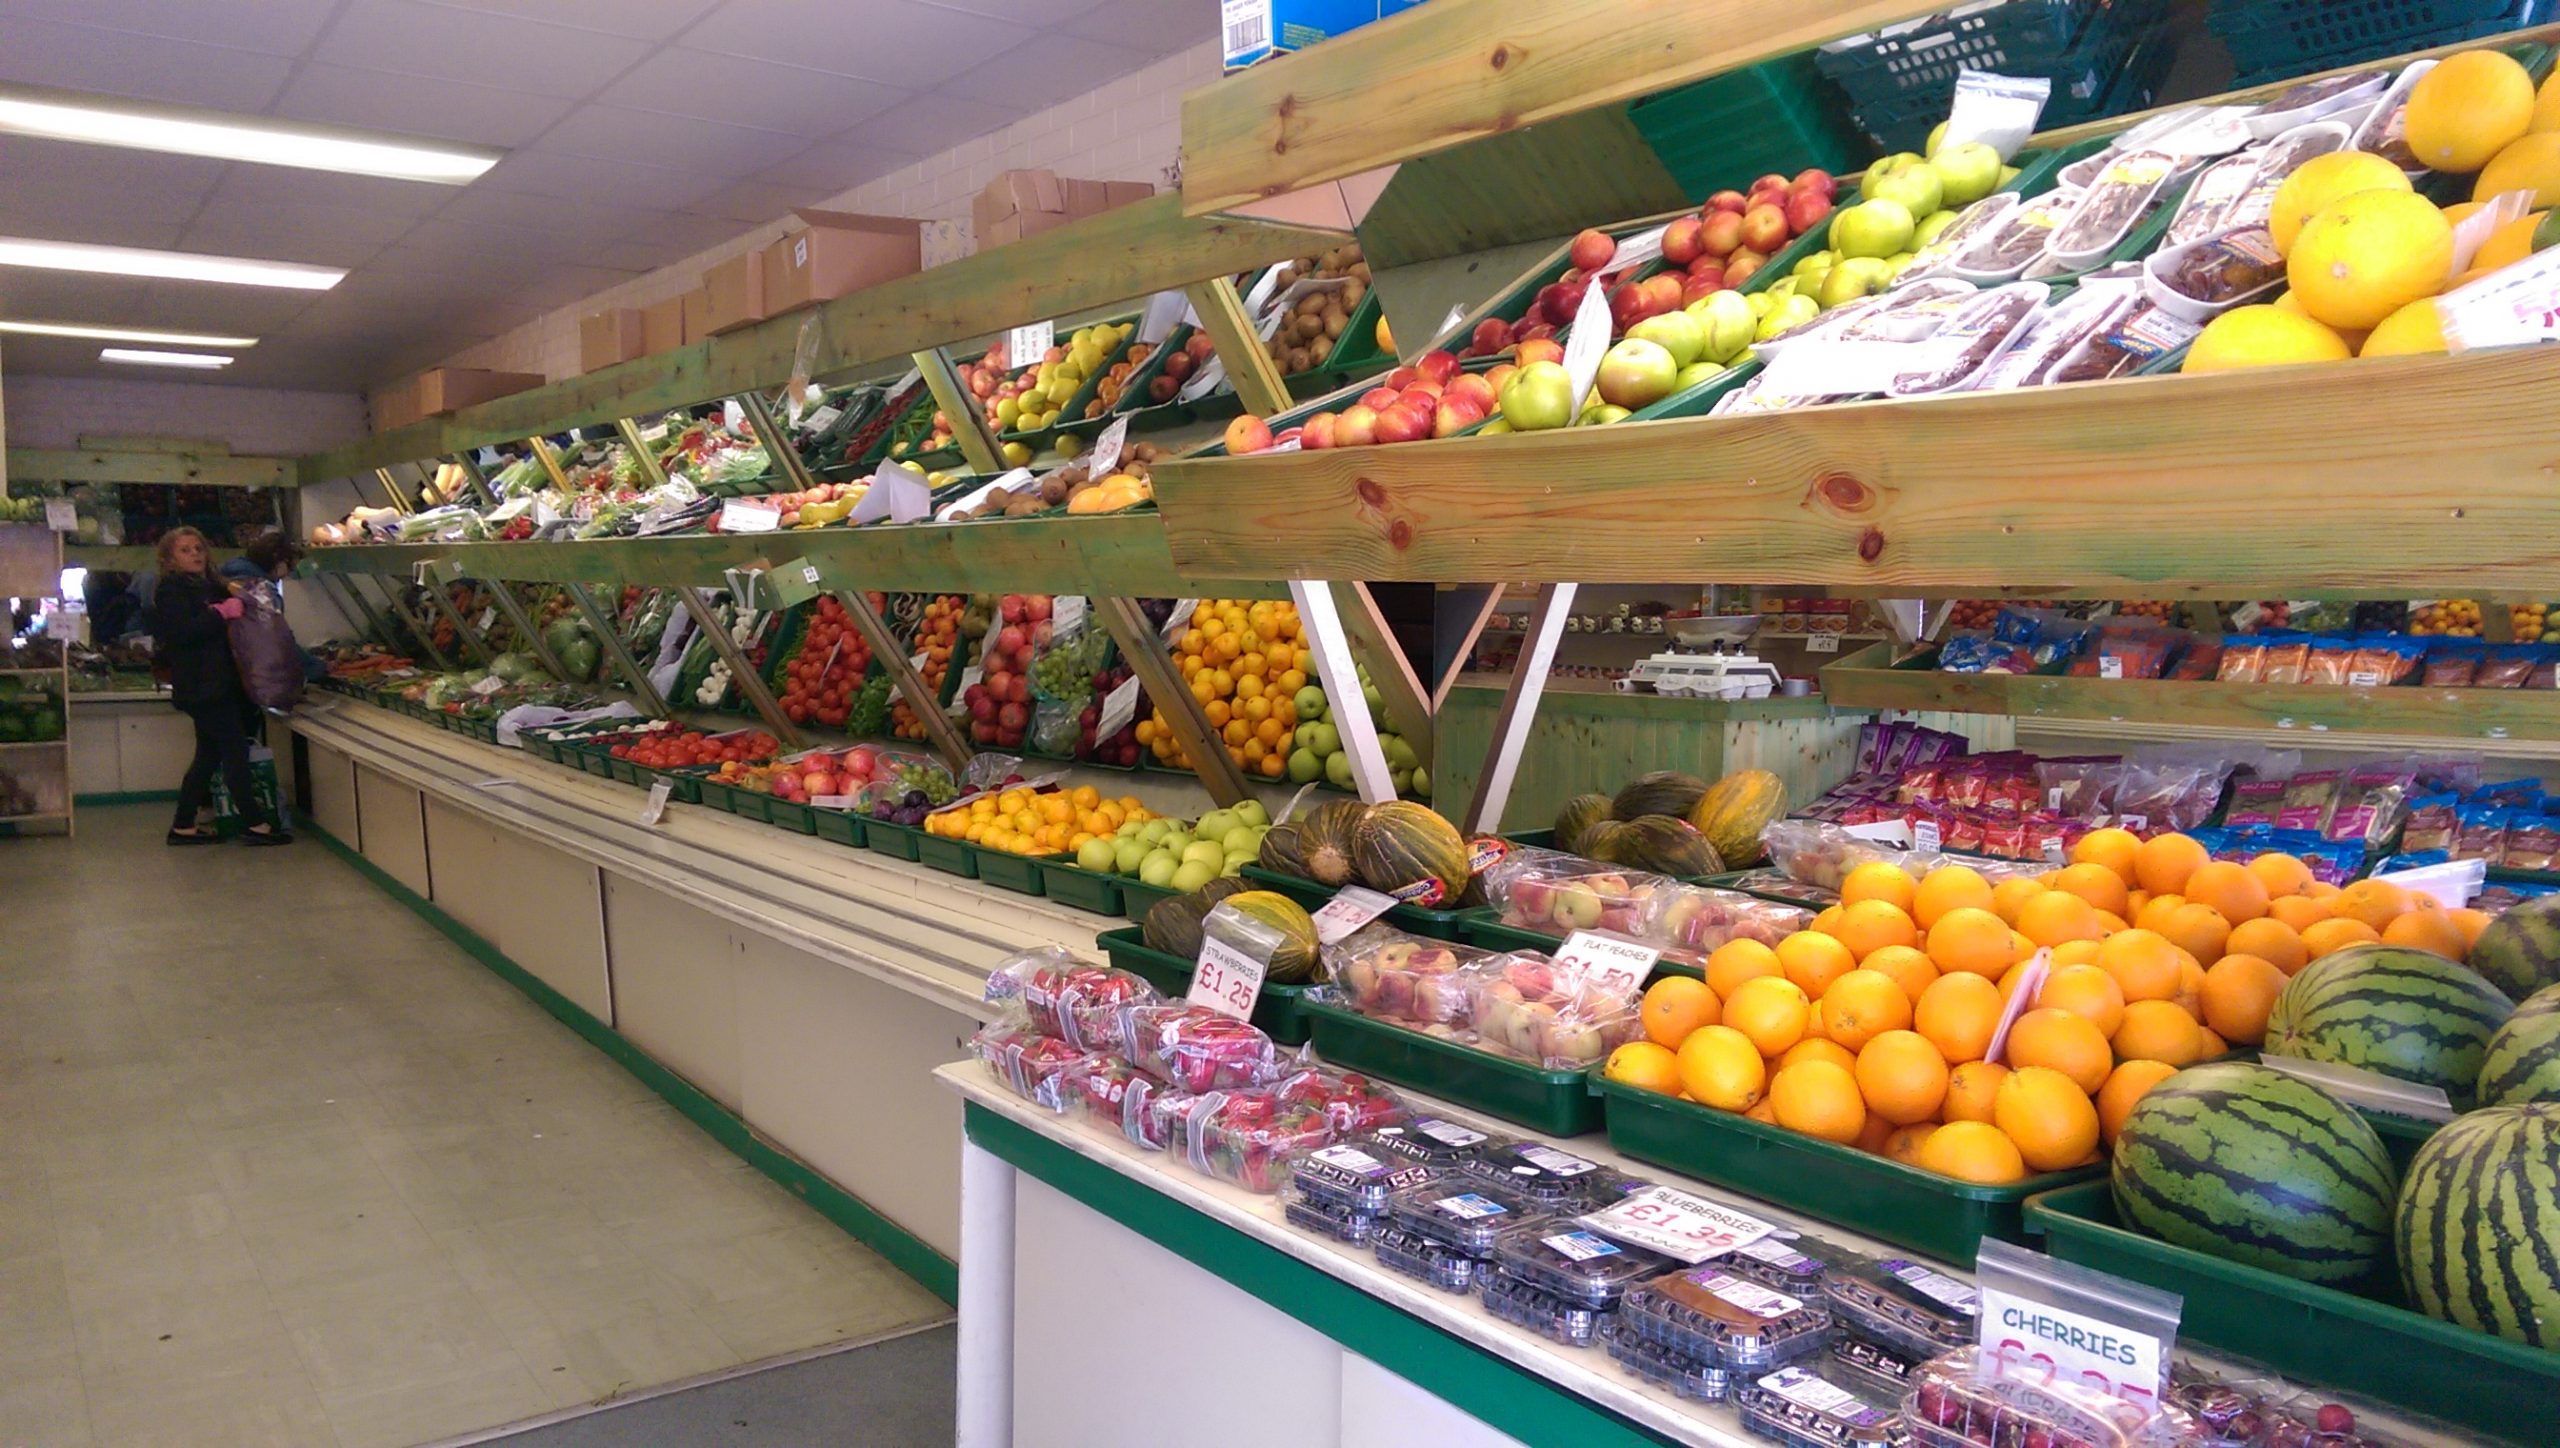 Rows of delicious fruit and veg at Pippins